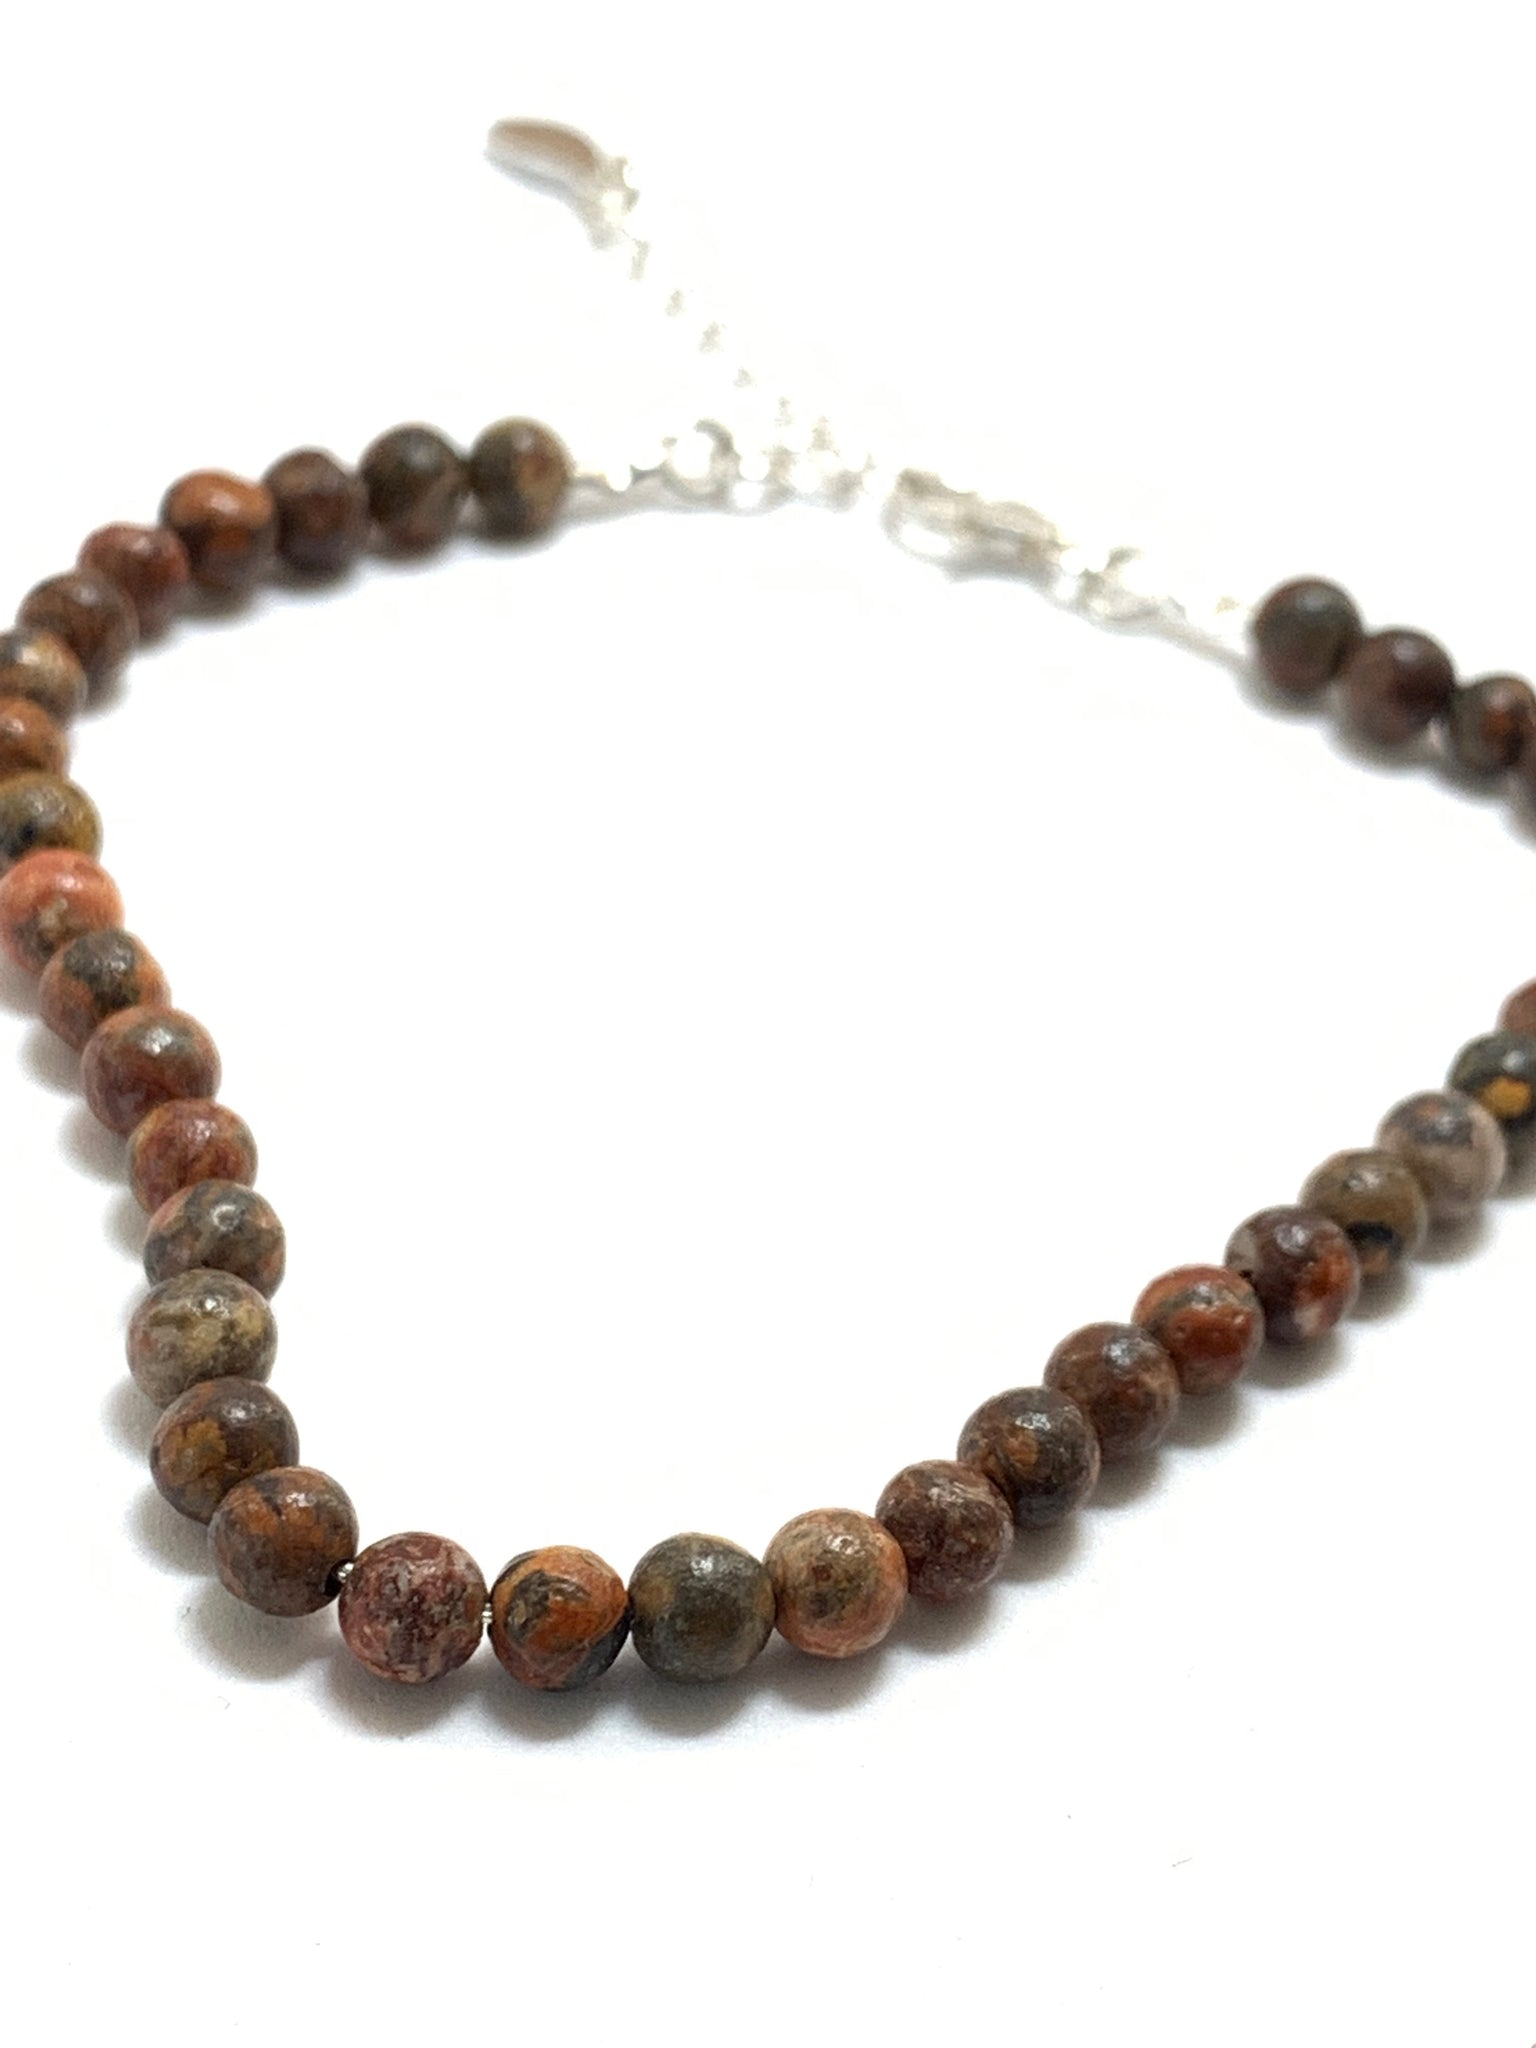 Leopardskin Semi Precious Gemstone Necklace on Silver Bead Chain - pixi-daisy